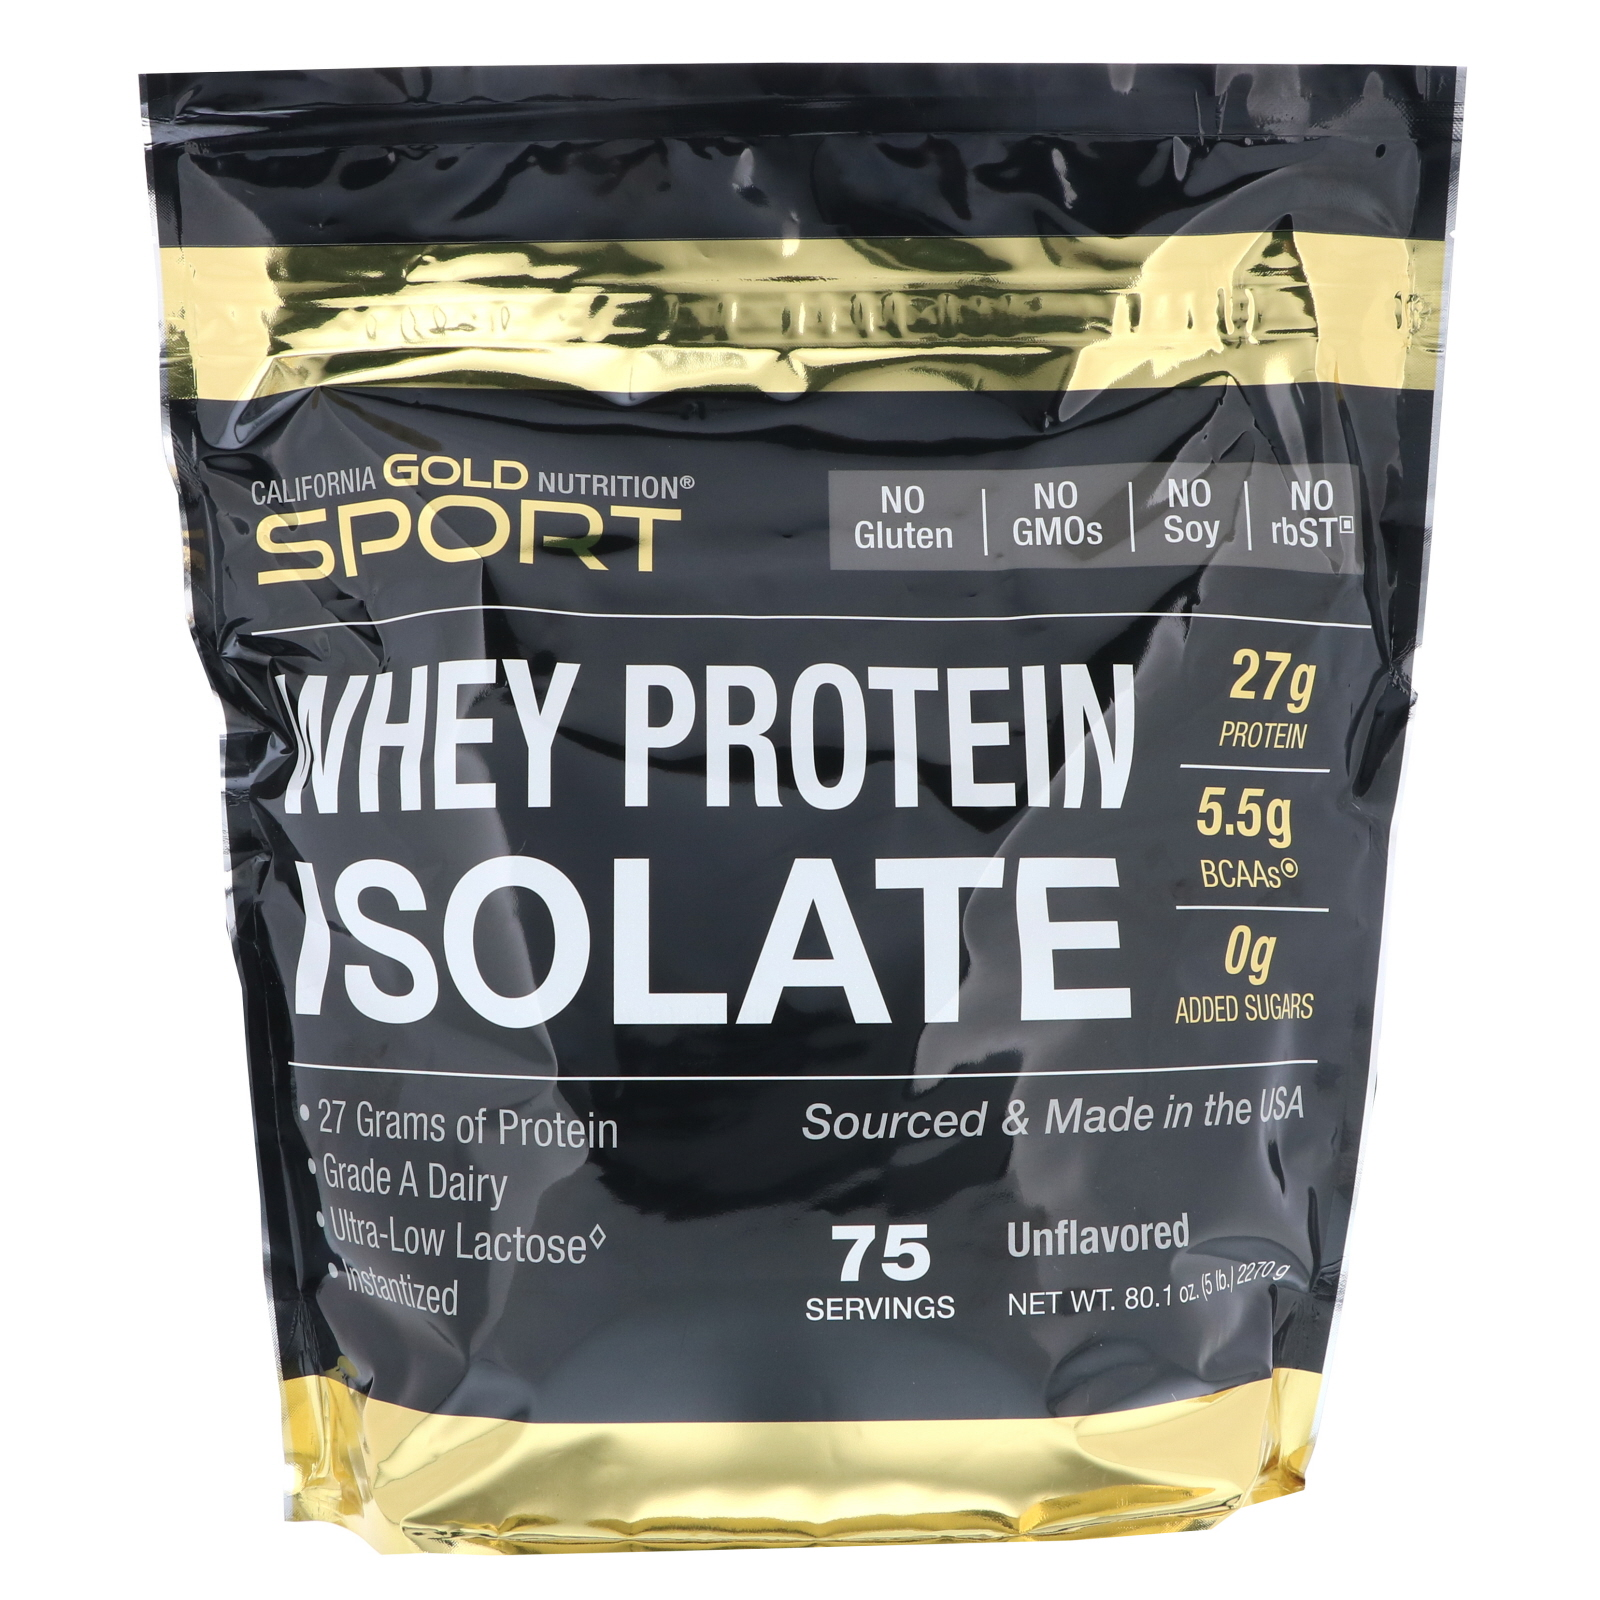 Whey protein isolate isolate whey protein Whey Protein Isolate price Whey Protein Isolate Gold Standard Whey Isolate فوائد Whey protein Gold Standard Whey protein concentrate Whey isolate